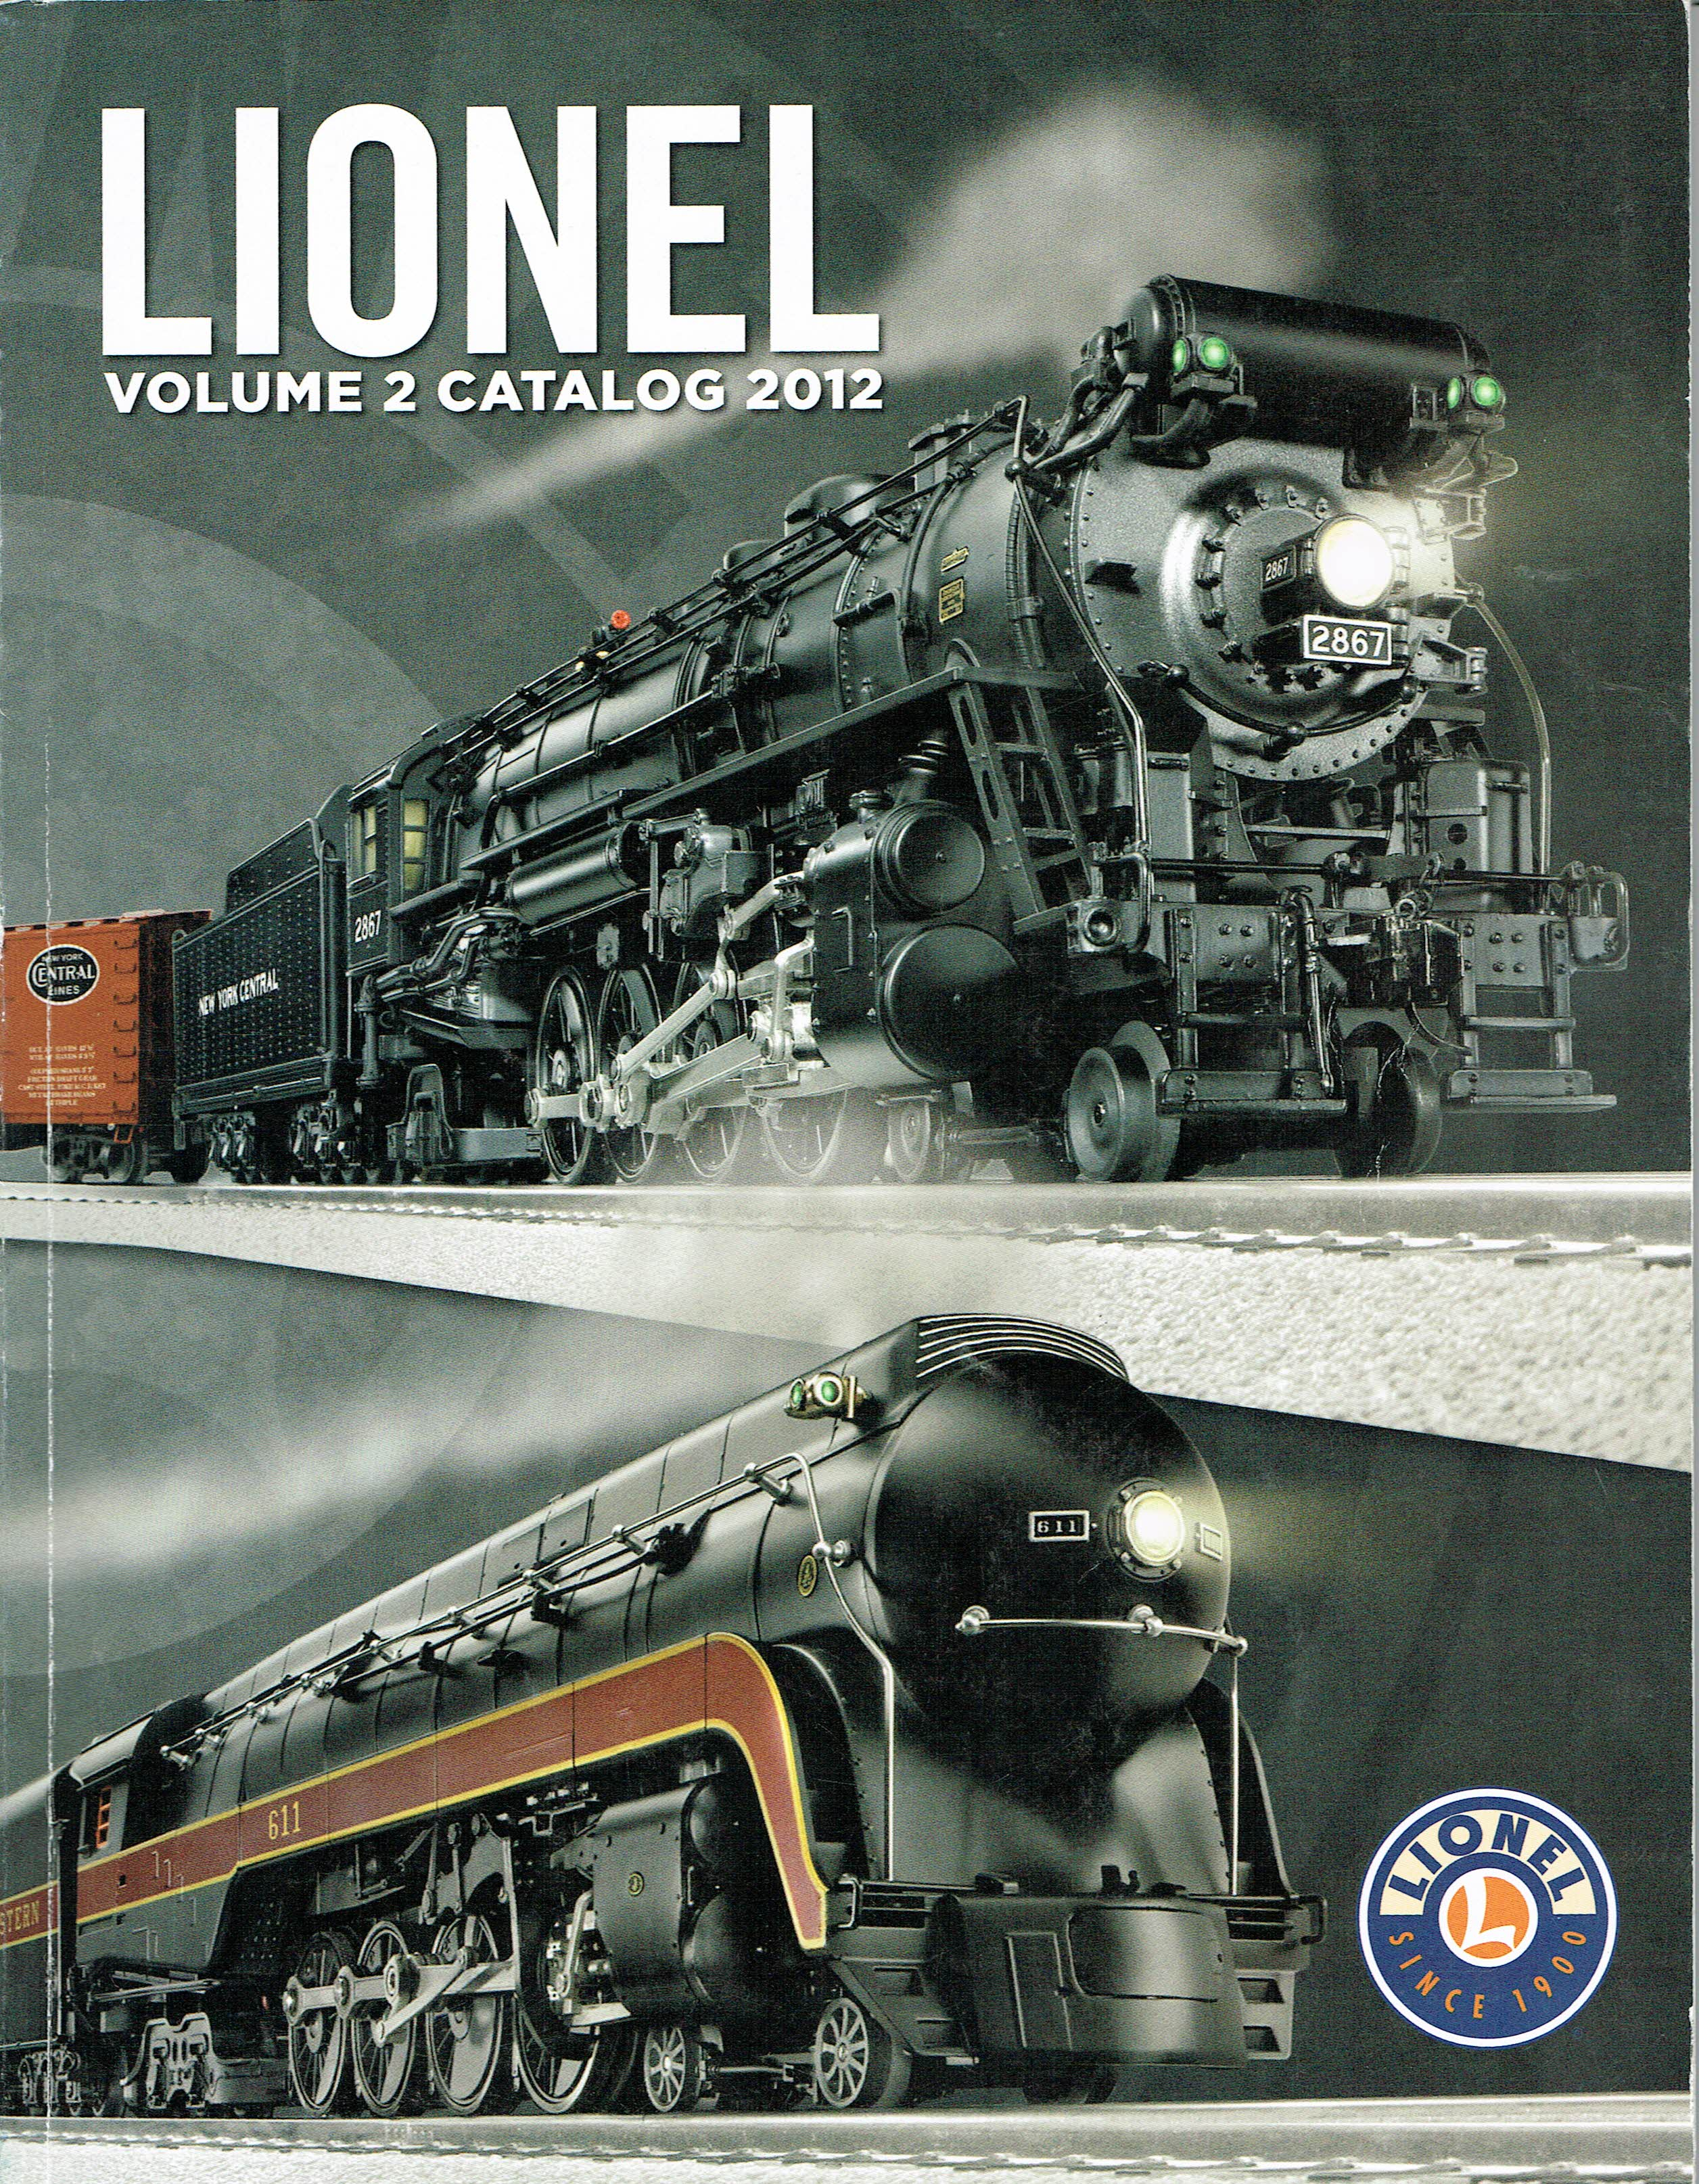 Lionel 2012 Volume 2 Catalog image